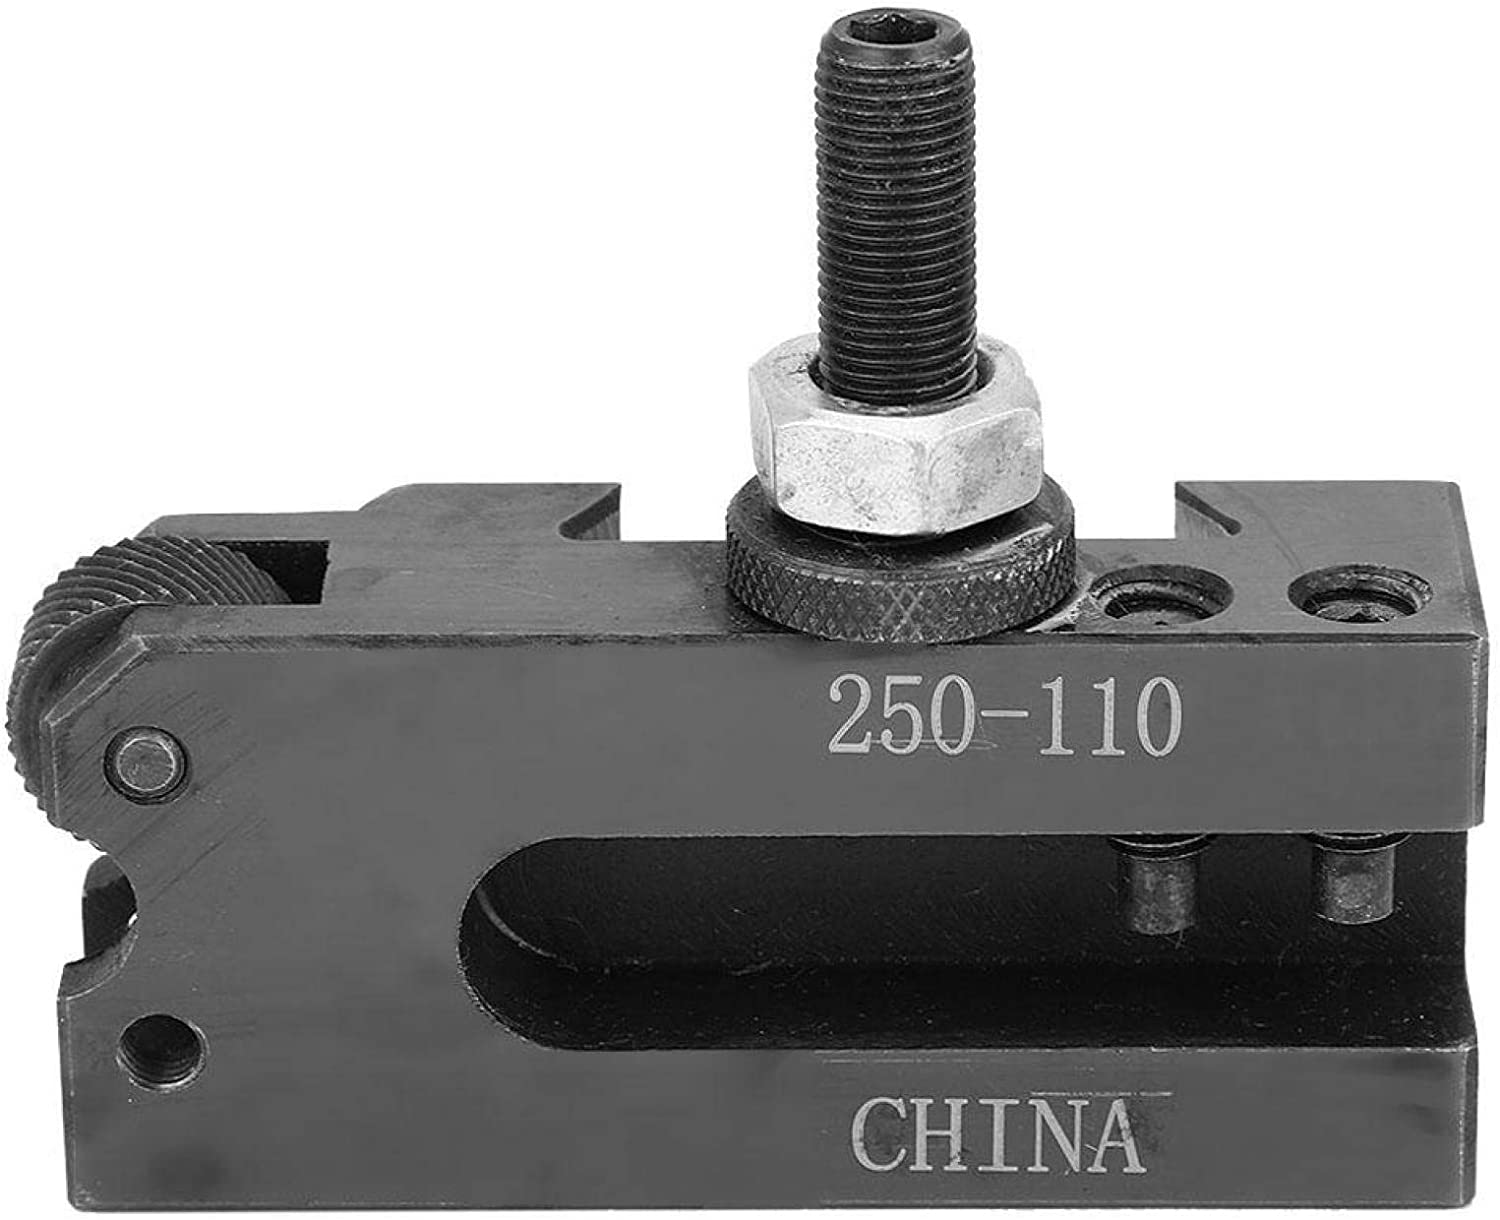 Precision Ground CNC Tool 250-110 Sales of SALE items from new works Holde Post Hardened 35% OFF